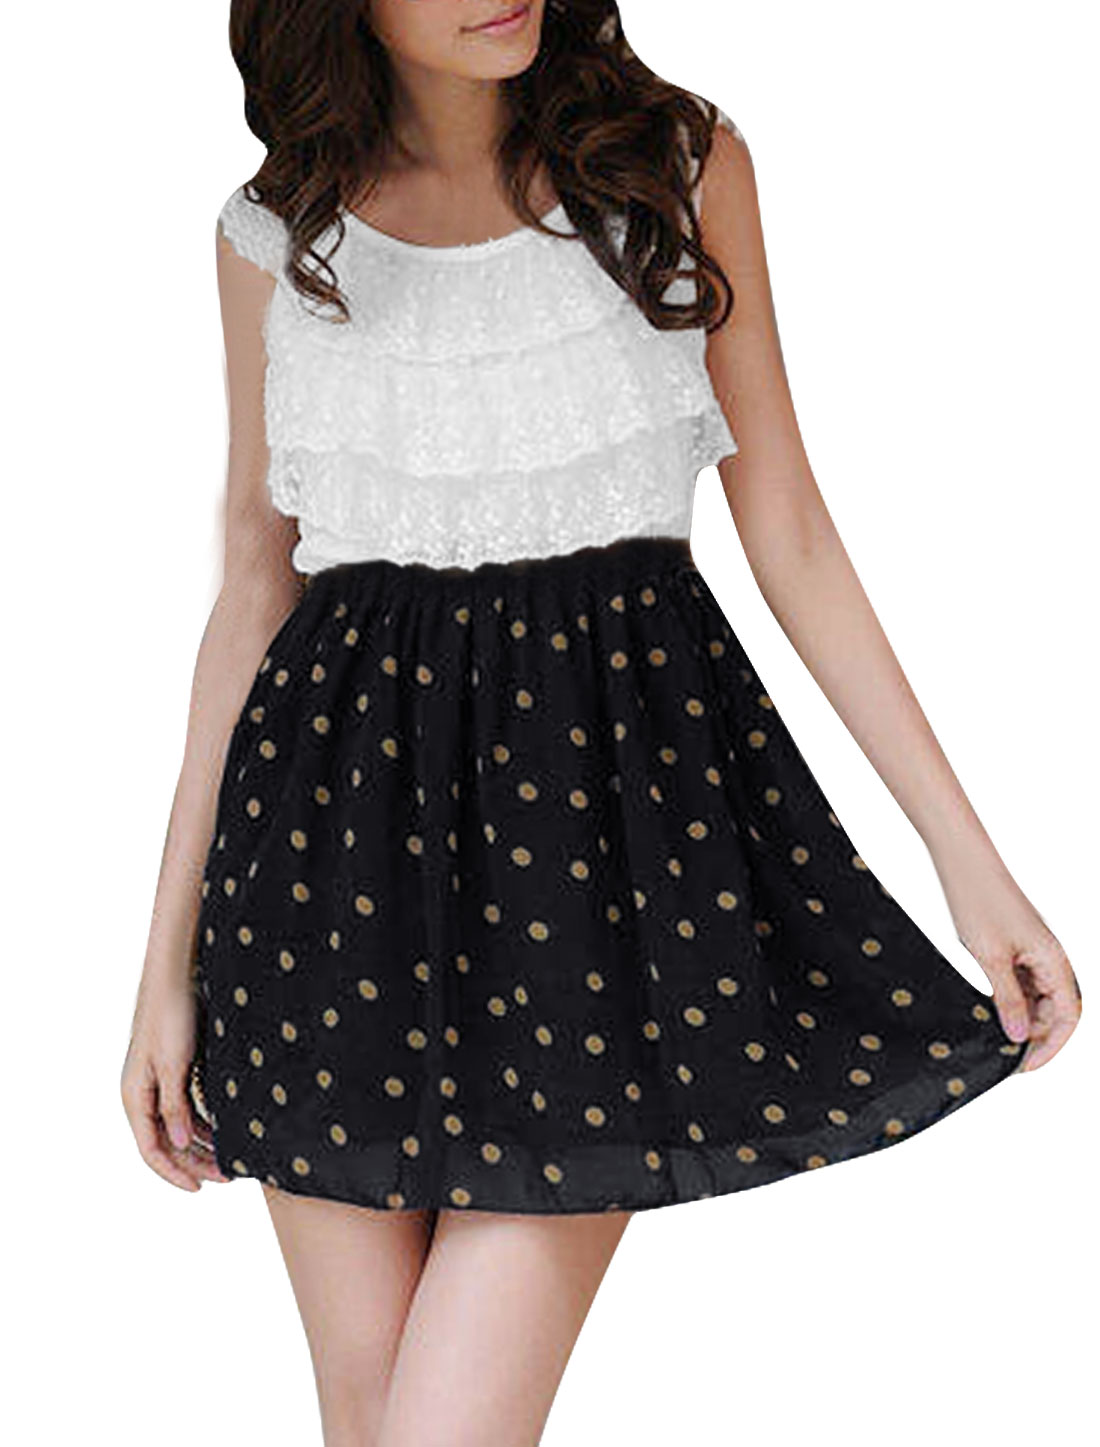 Women Dots Pattern Round Neck Sleeveless Lace Dress White Navy Blue XS